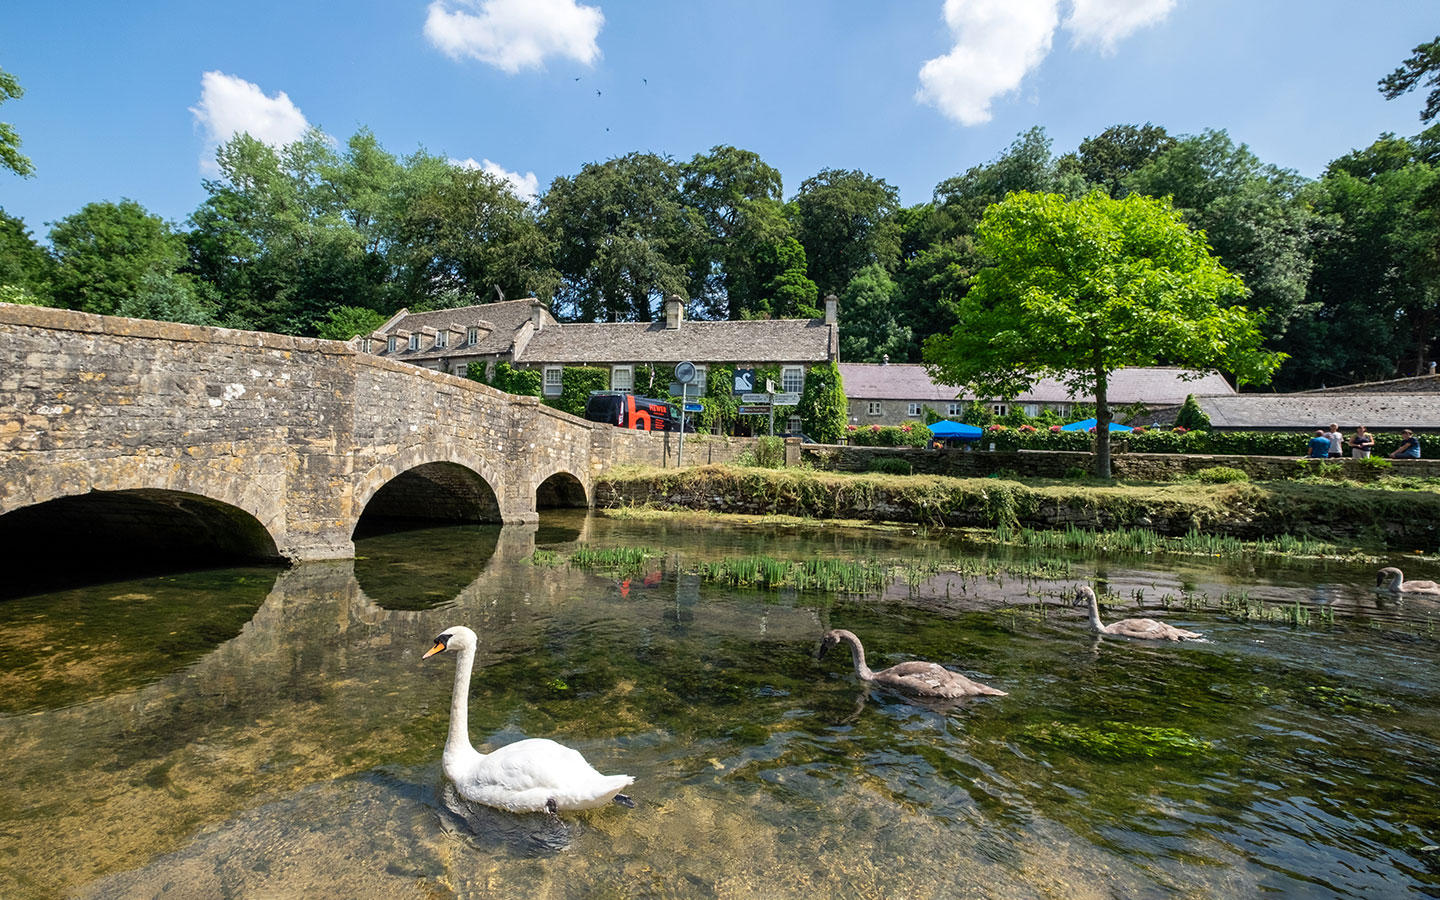 Swans on the River Coln in Bibury